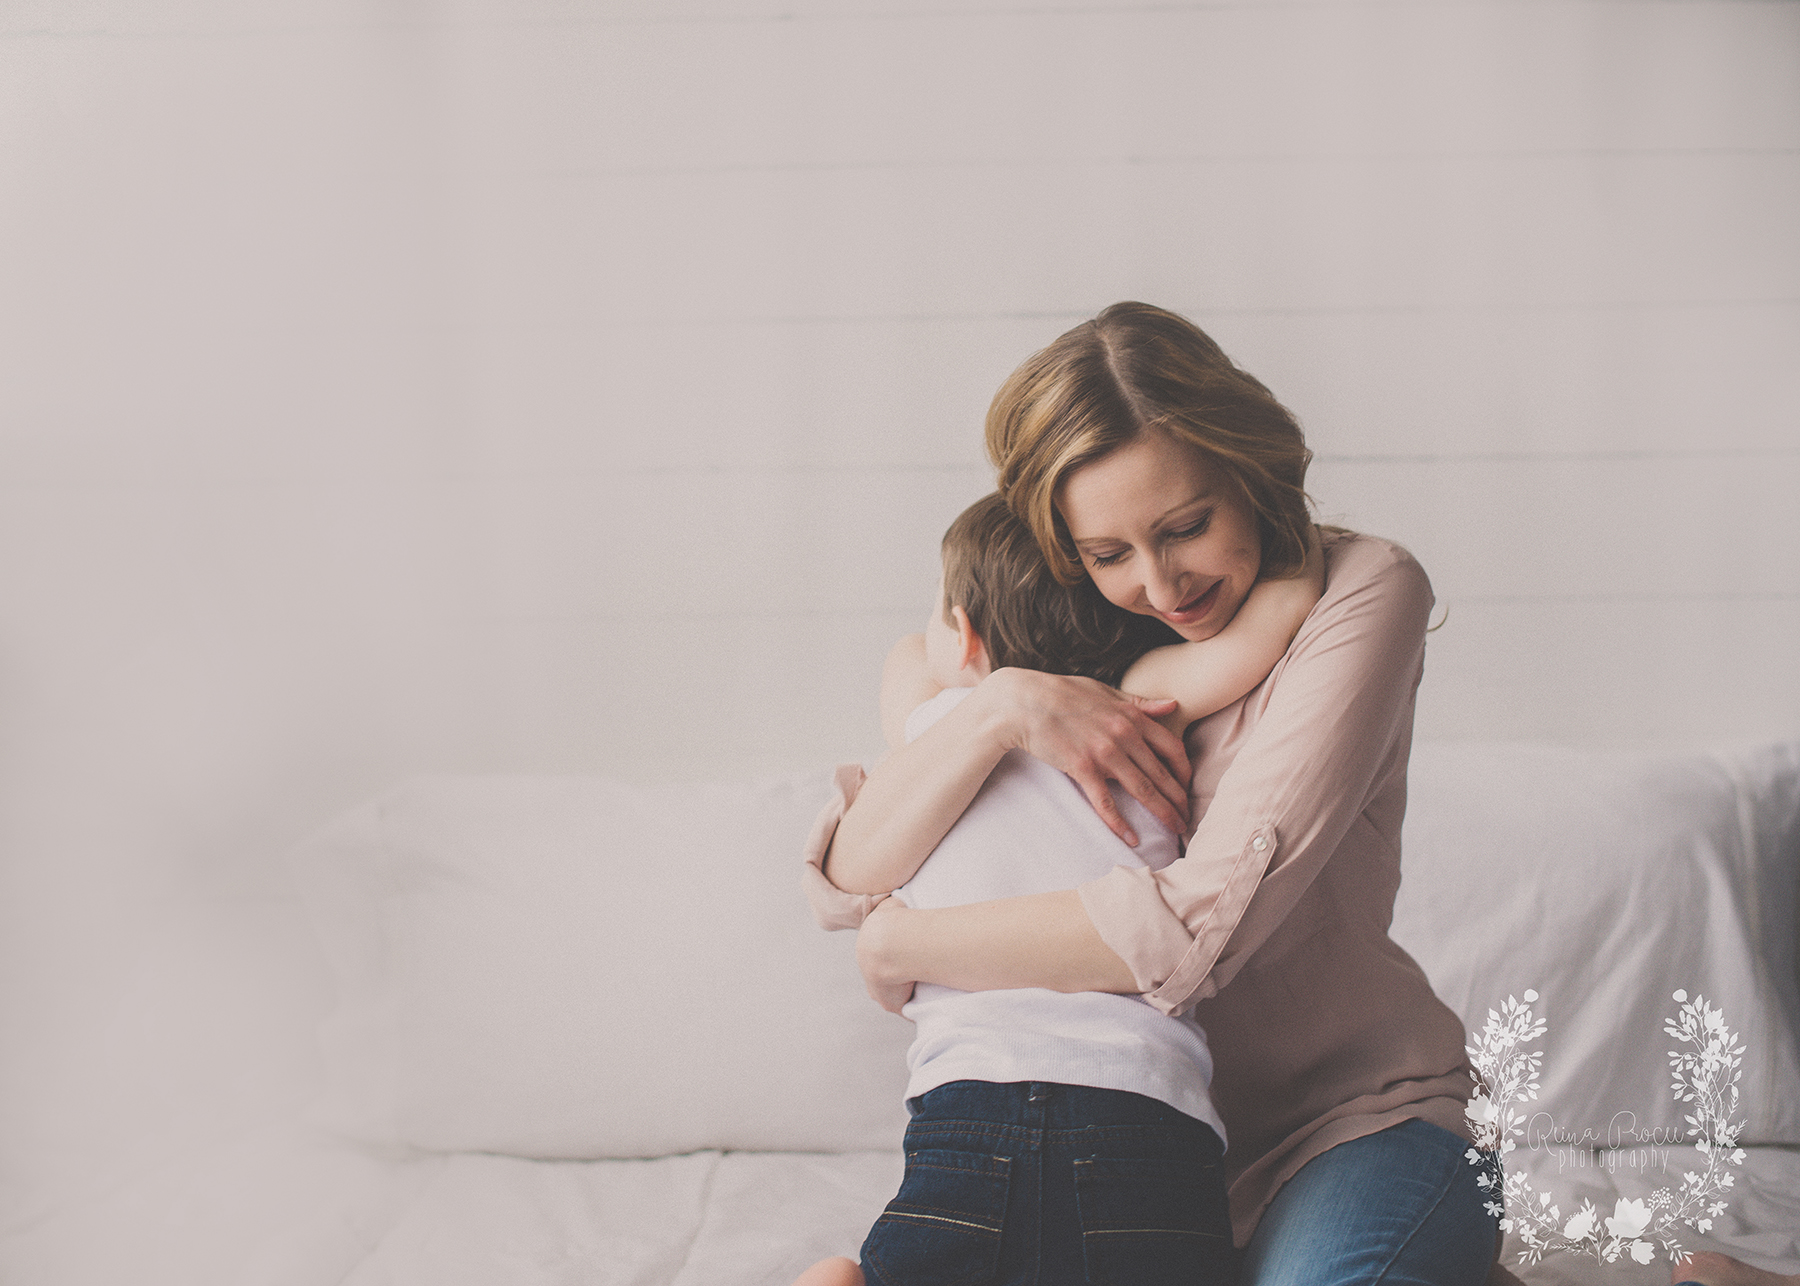 mother-child-love-family-portraits-montreal-photographer01.png